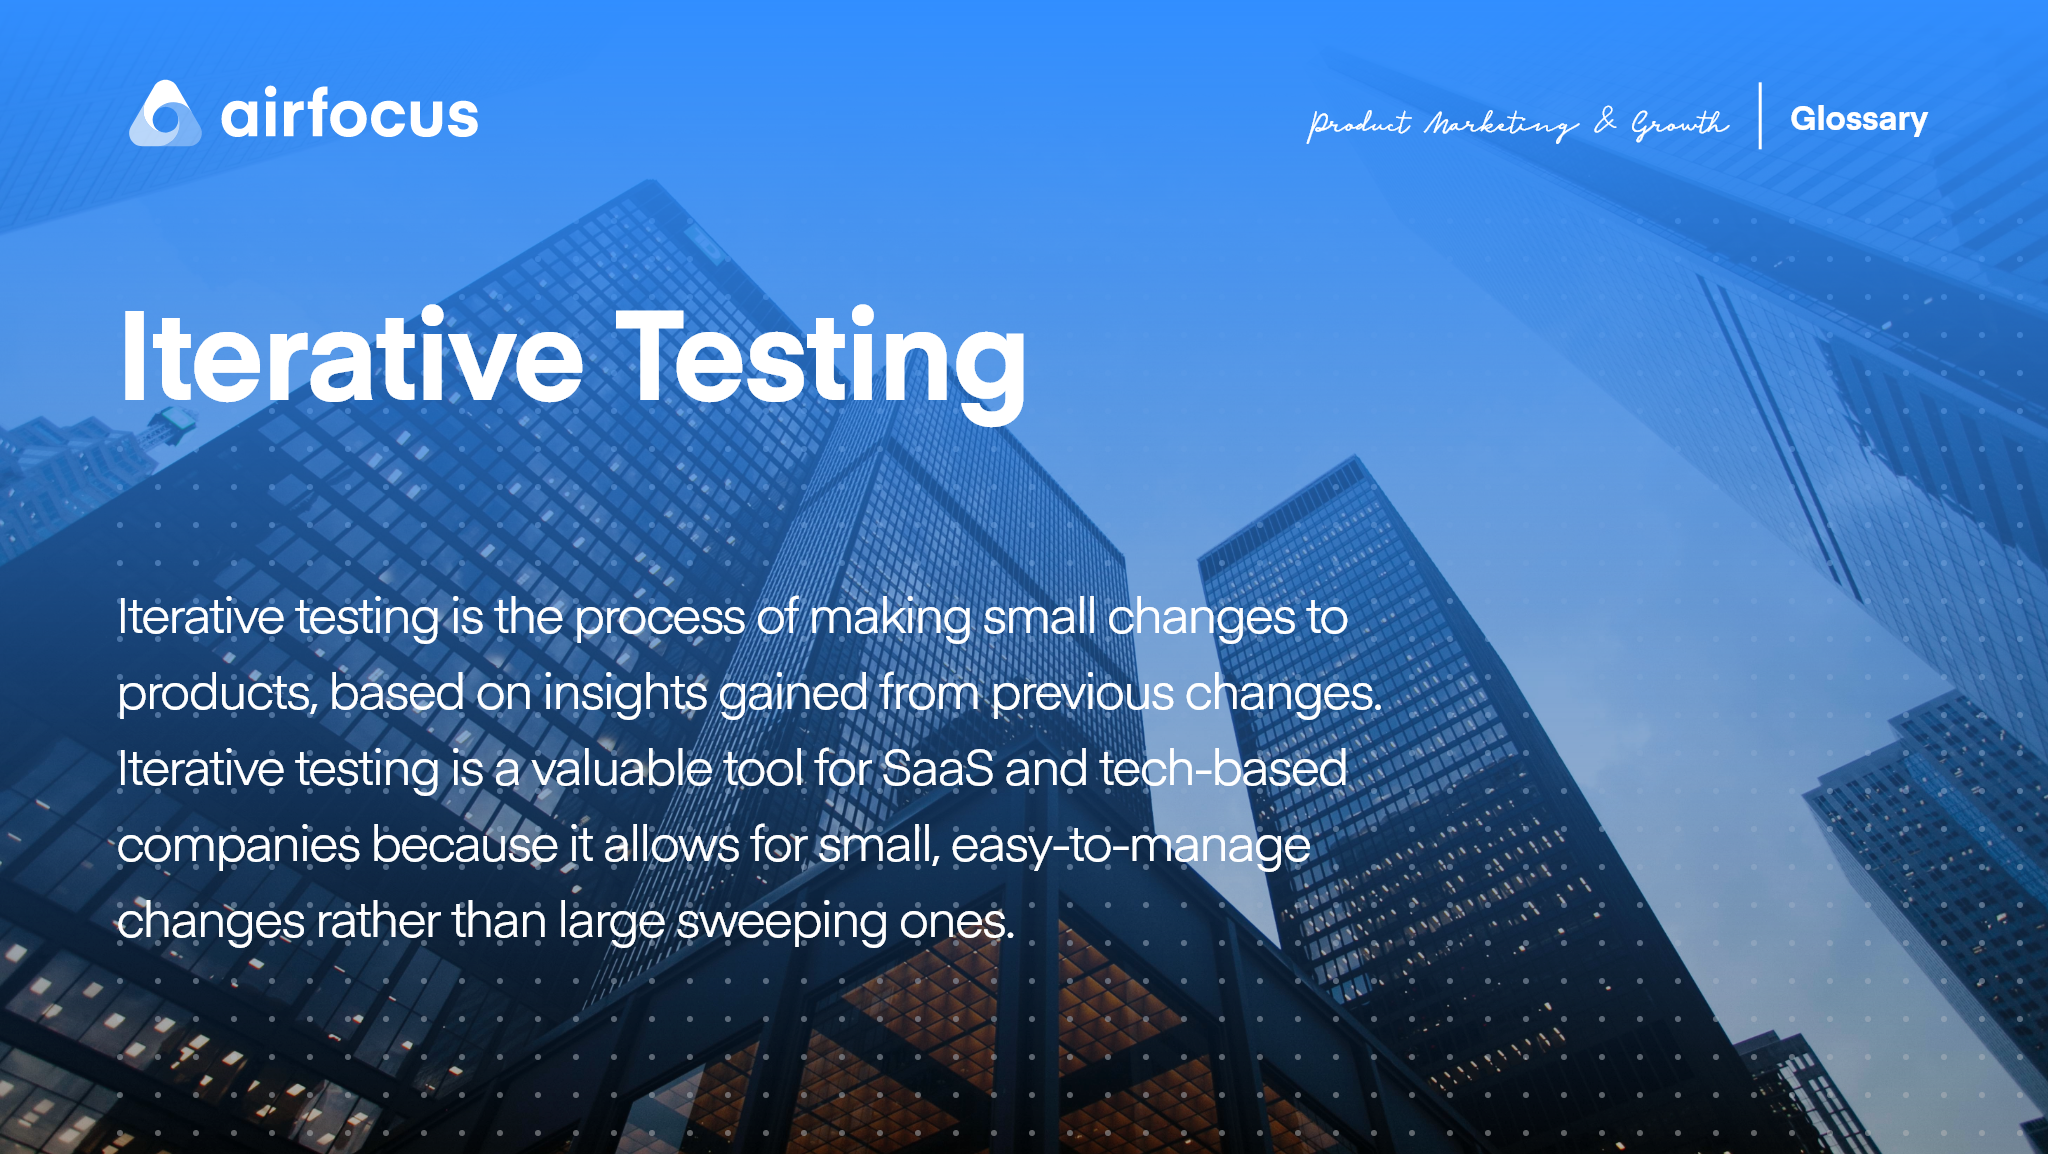 What is Iterative Testing